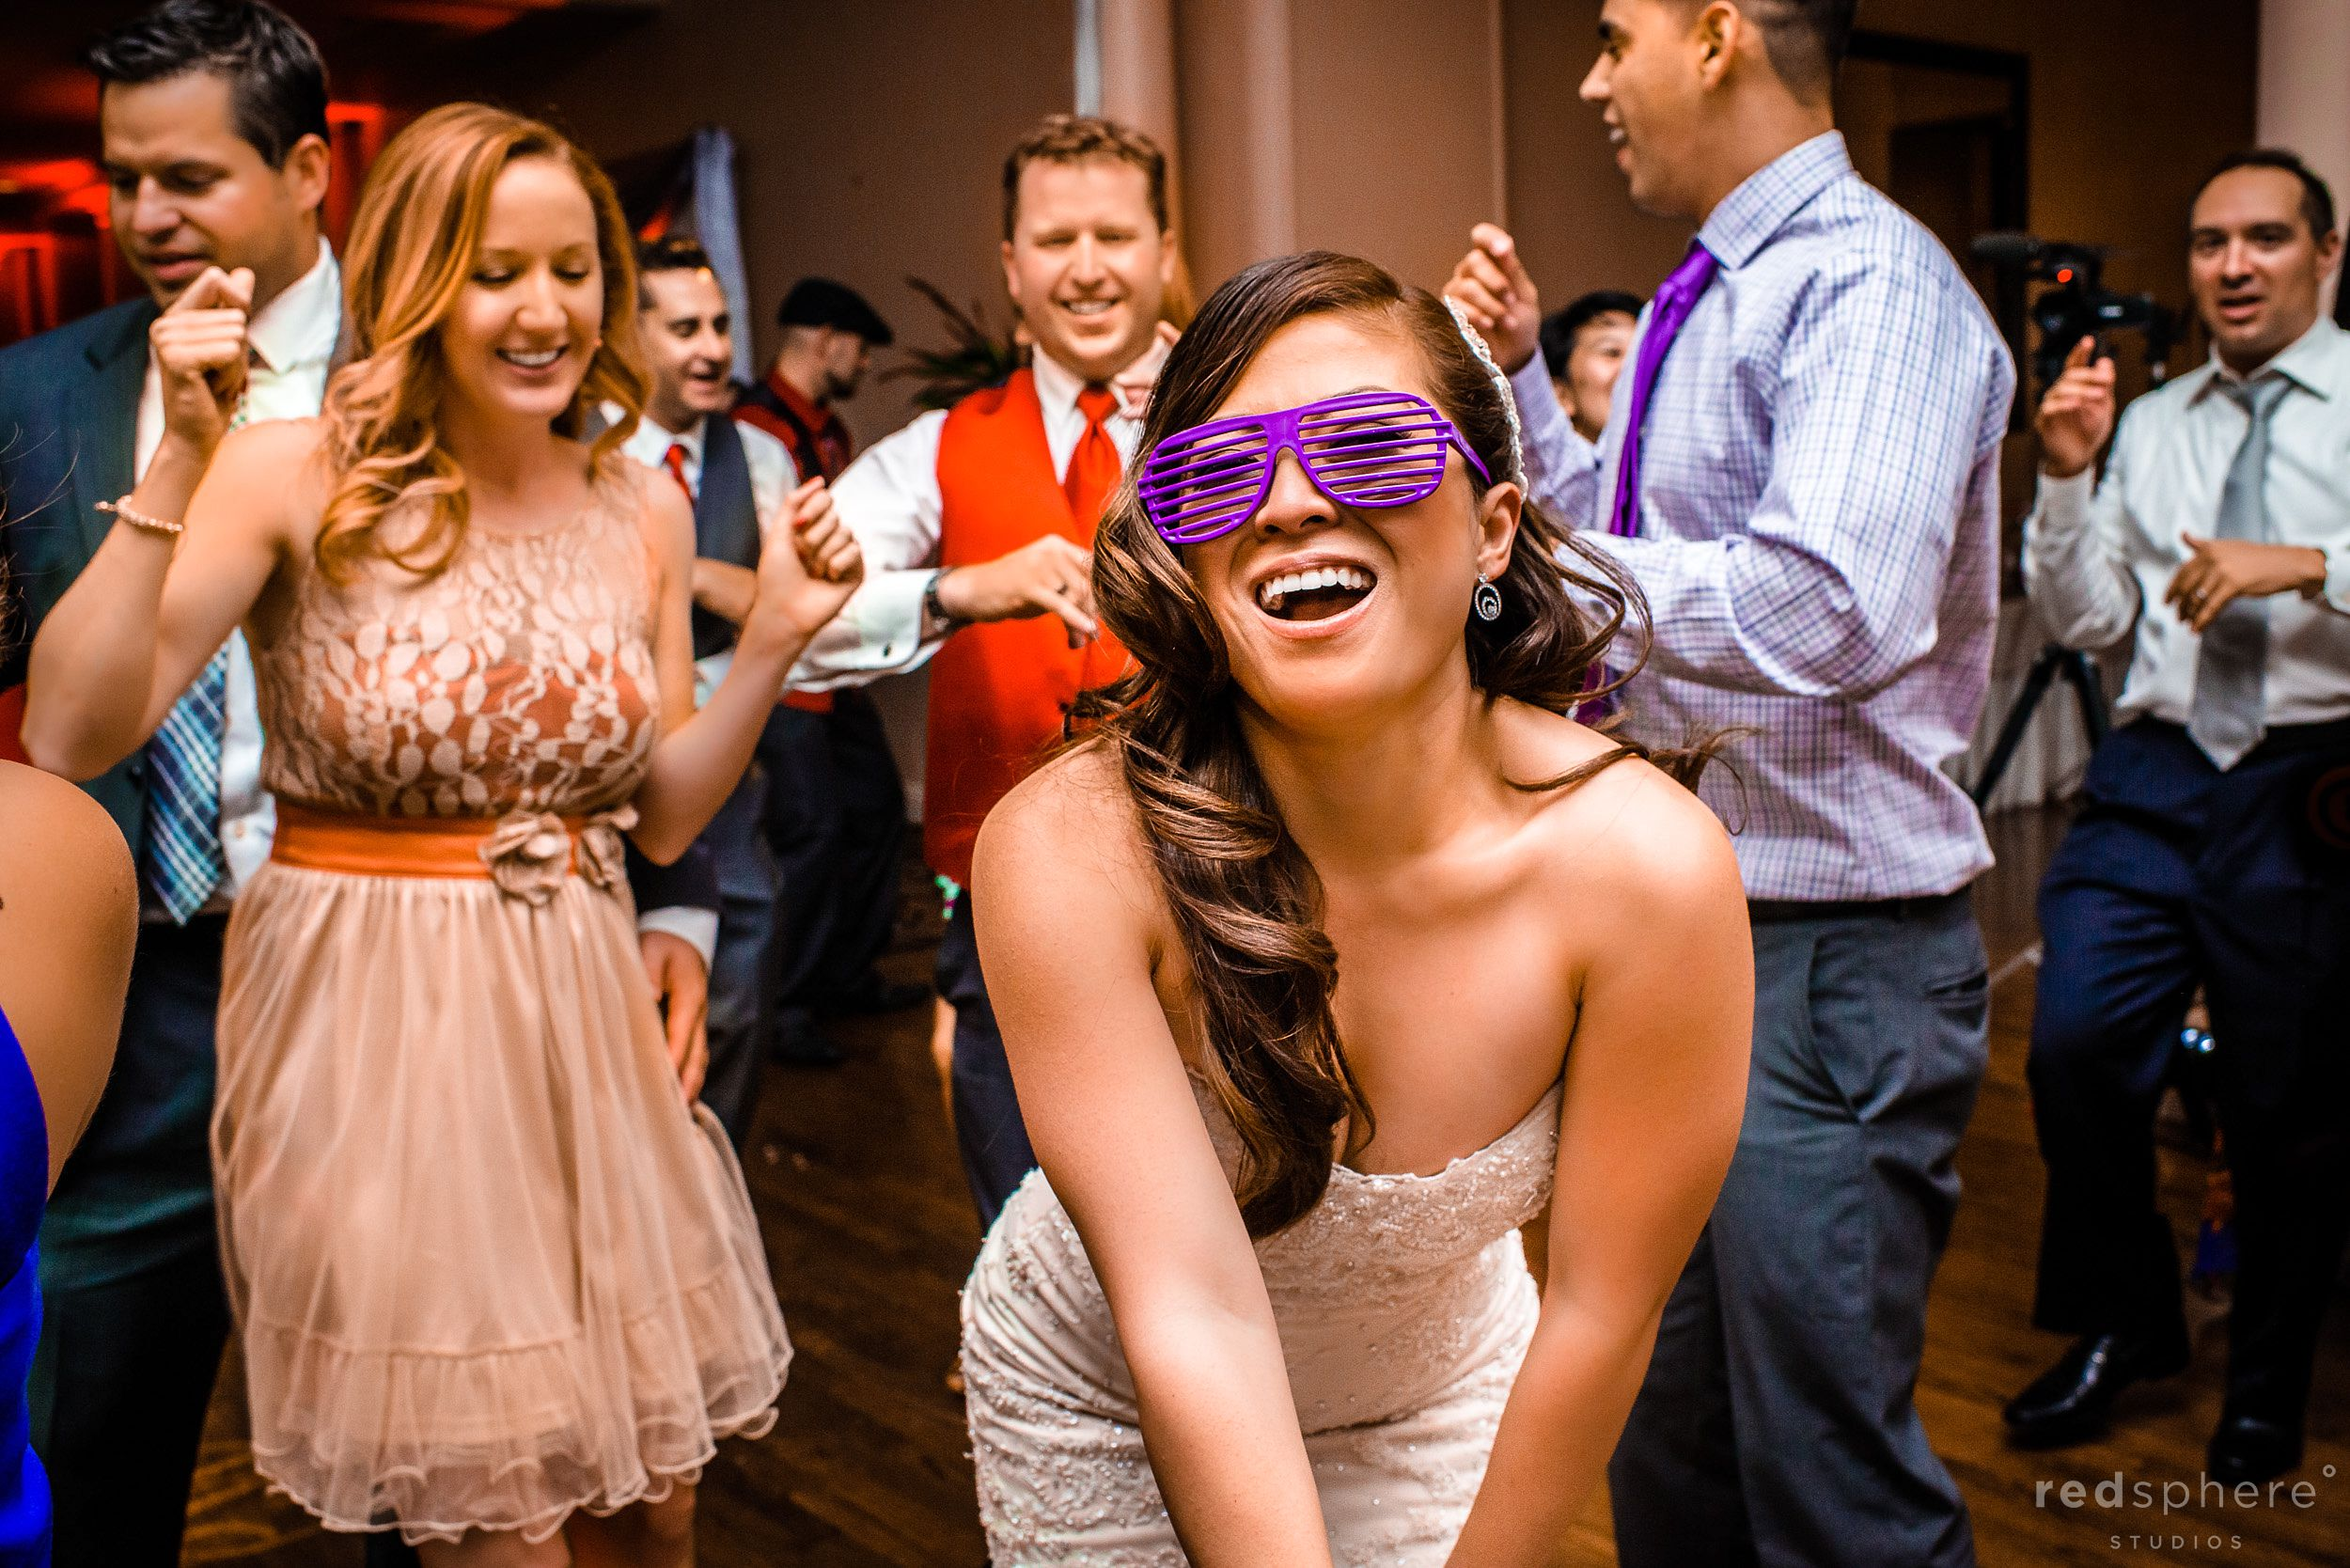 Bride Follows Groom and Shows Her Silly Side